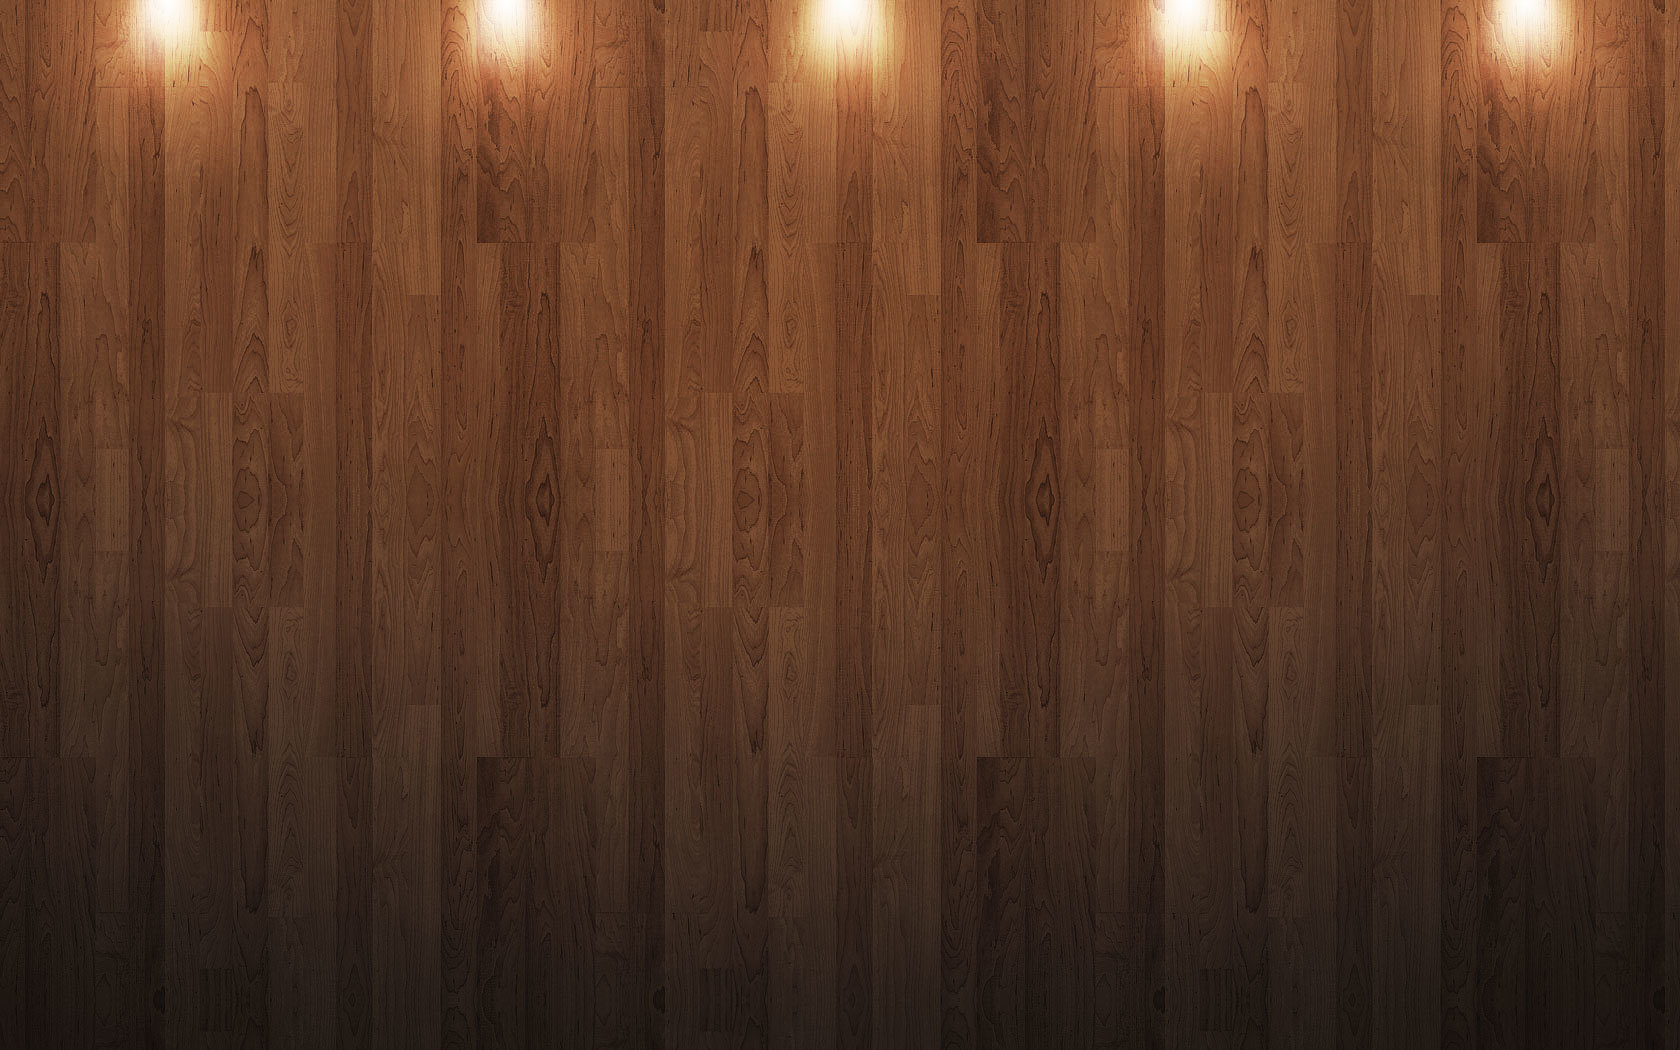 Dark wood texture | PSDGraphics - Photoshop backgrounds, textures